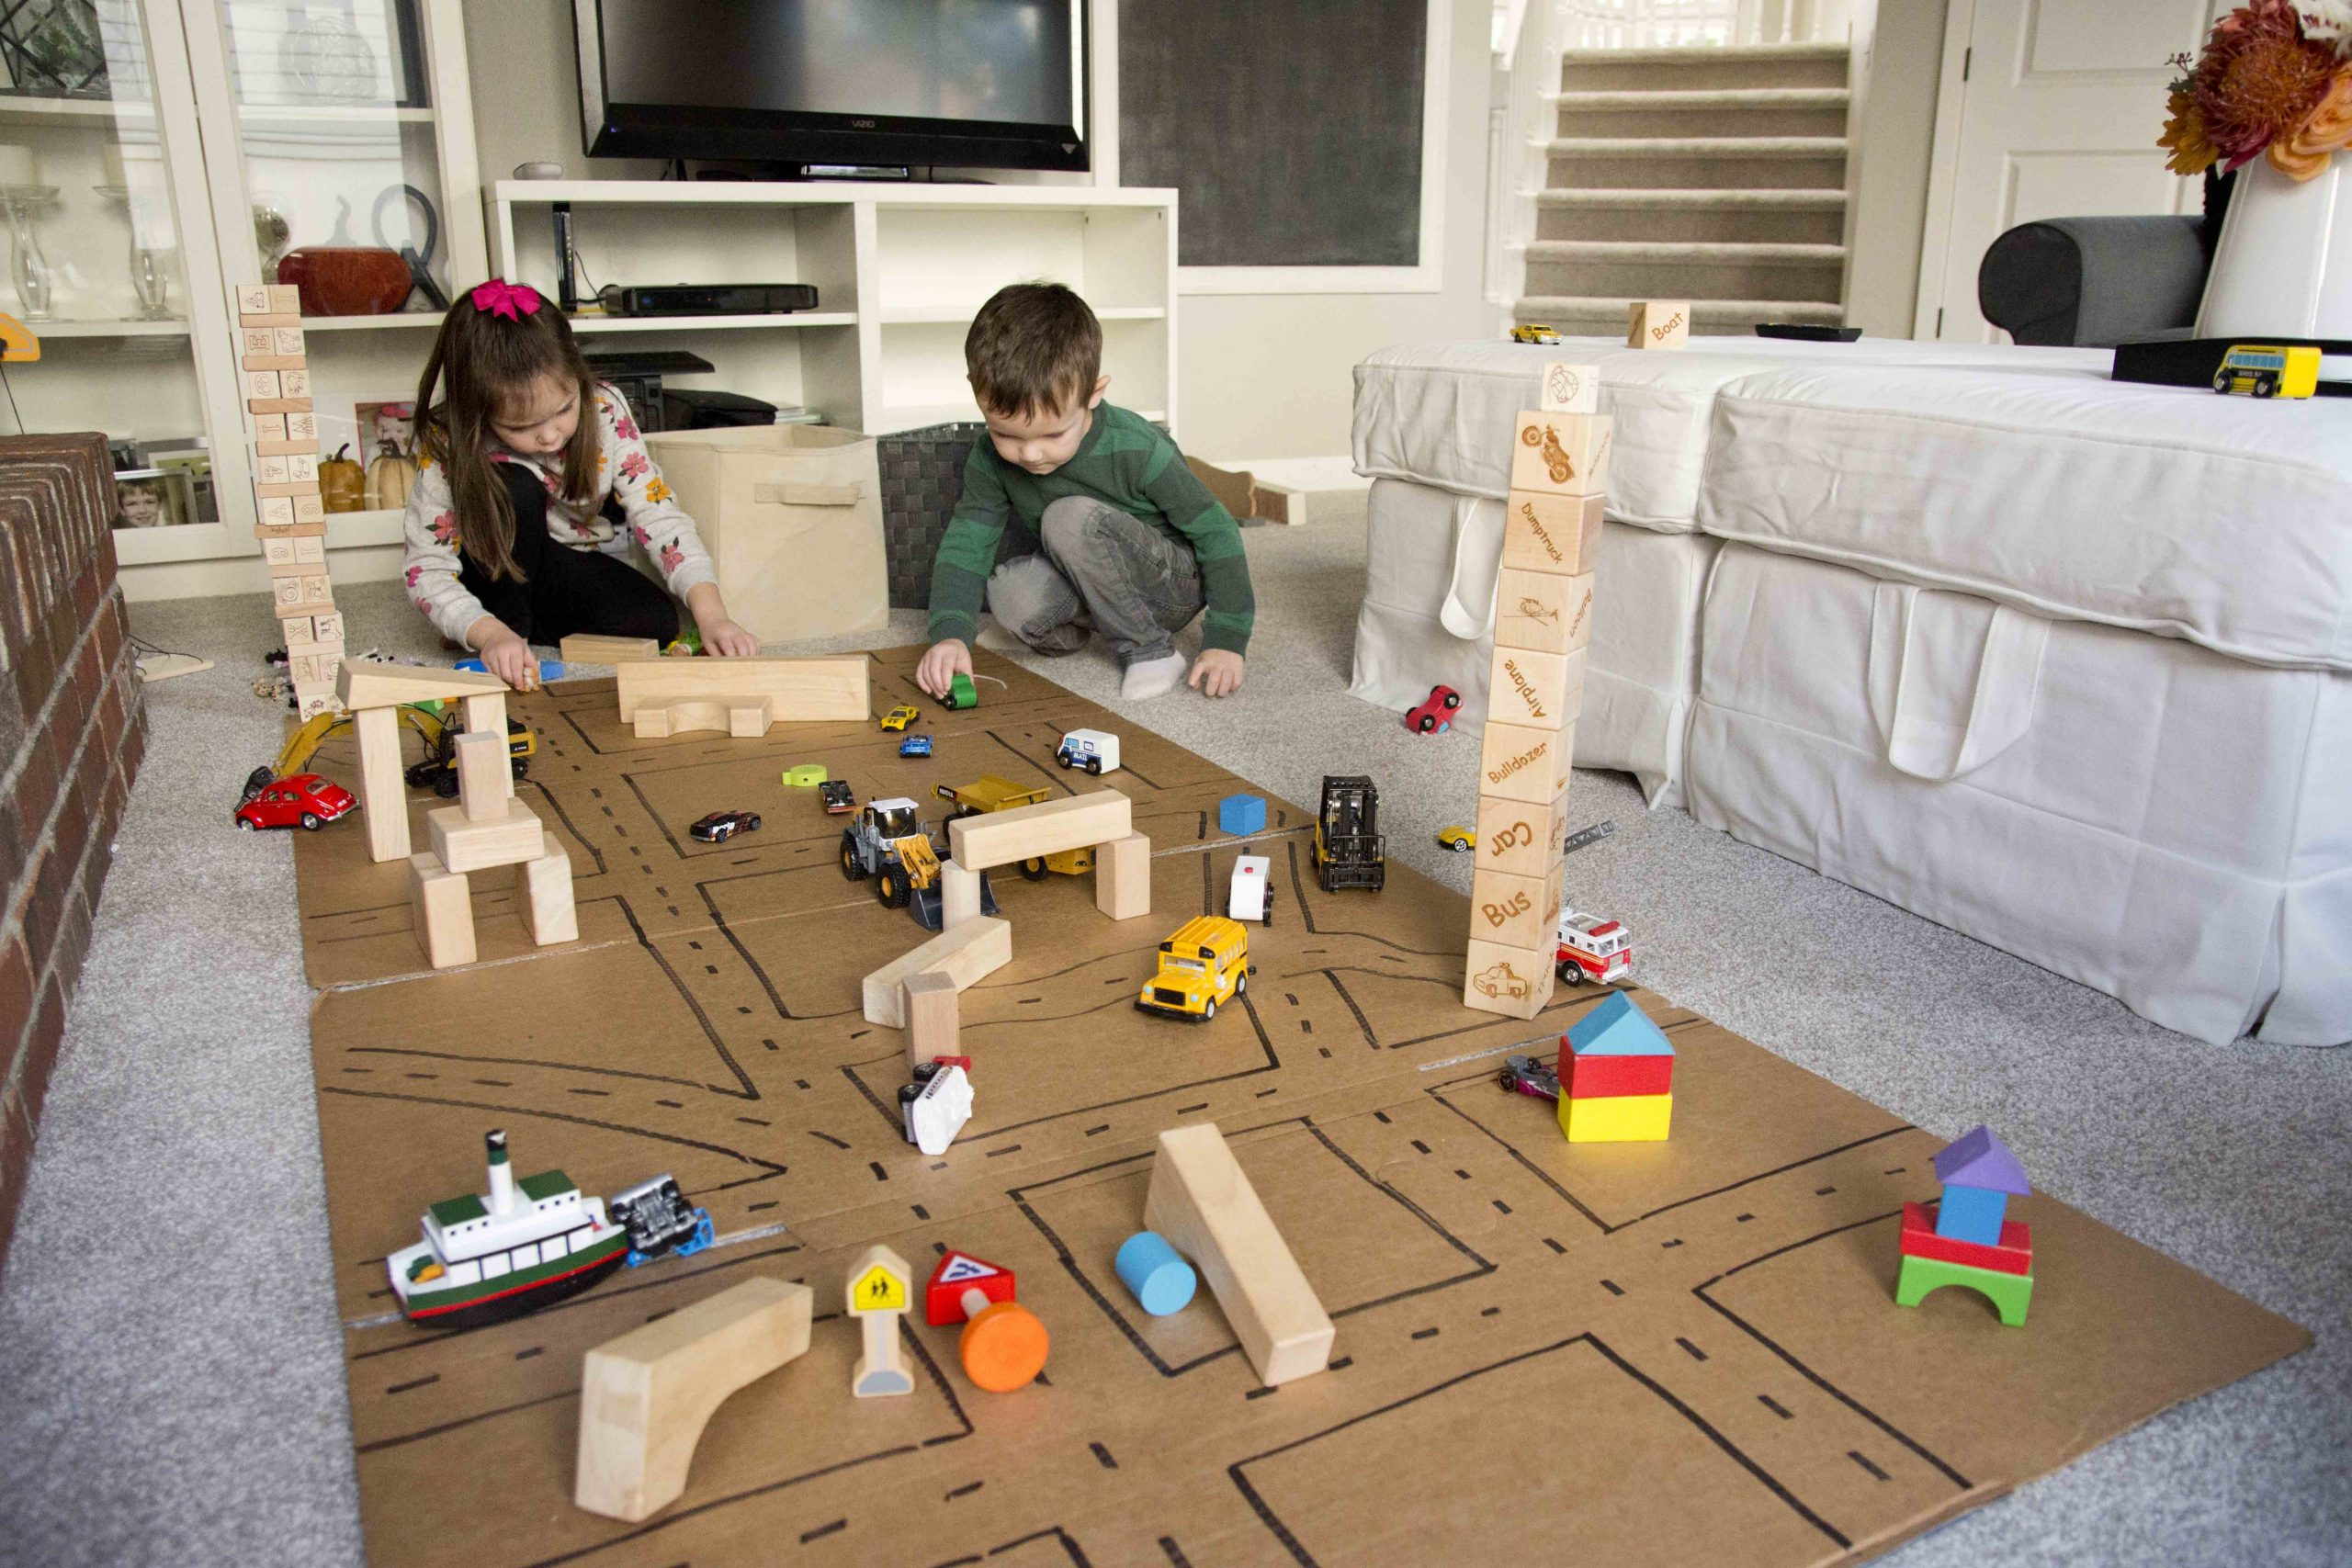 Activities for Kids at Home After Coronavirus School Closure  Time - Baby Room Activity Ideas